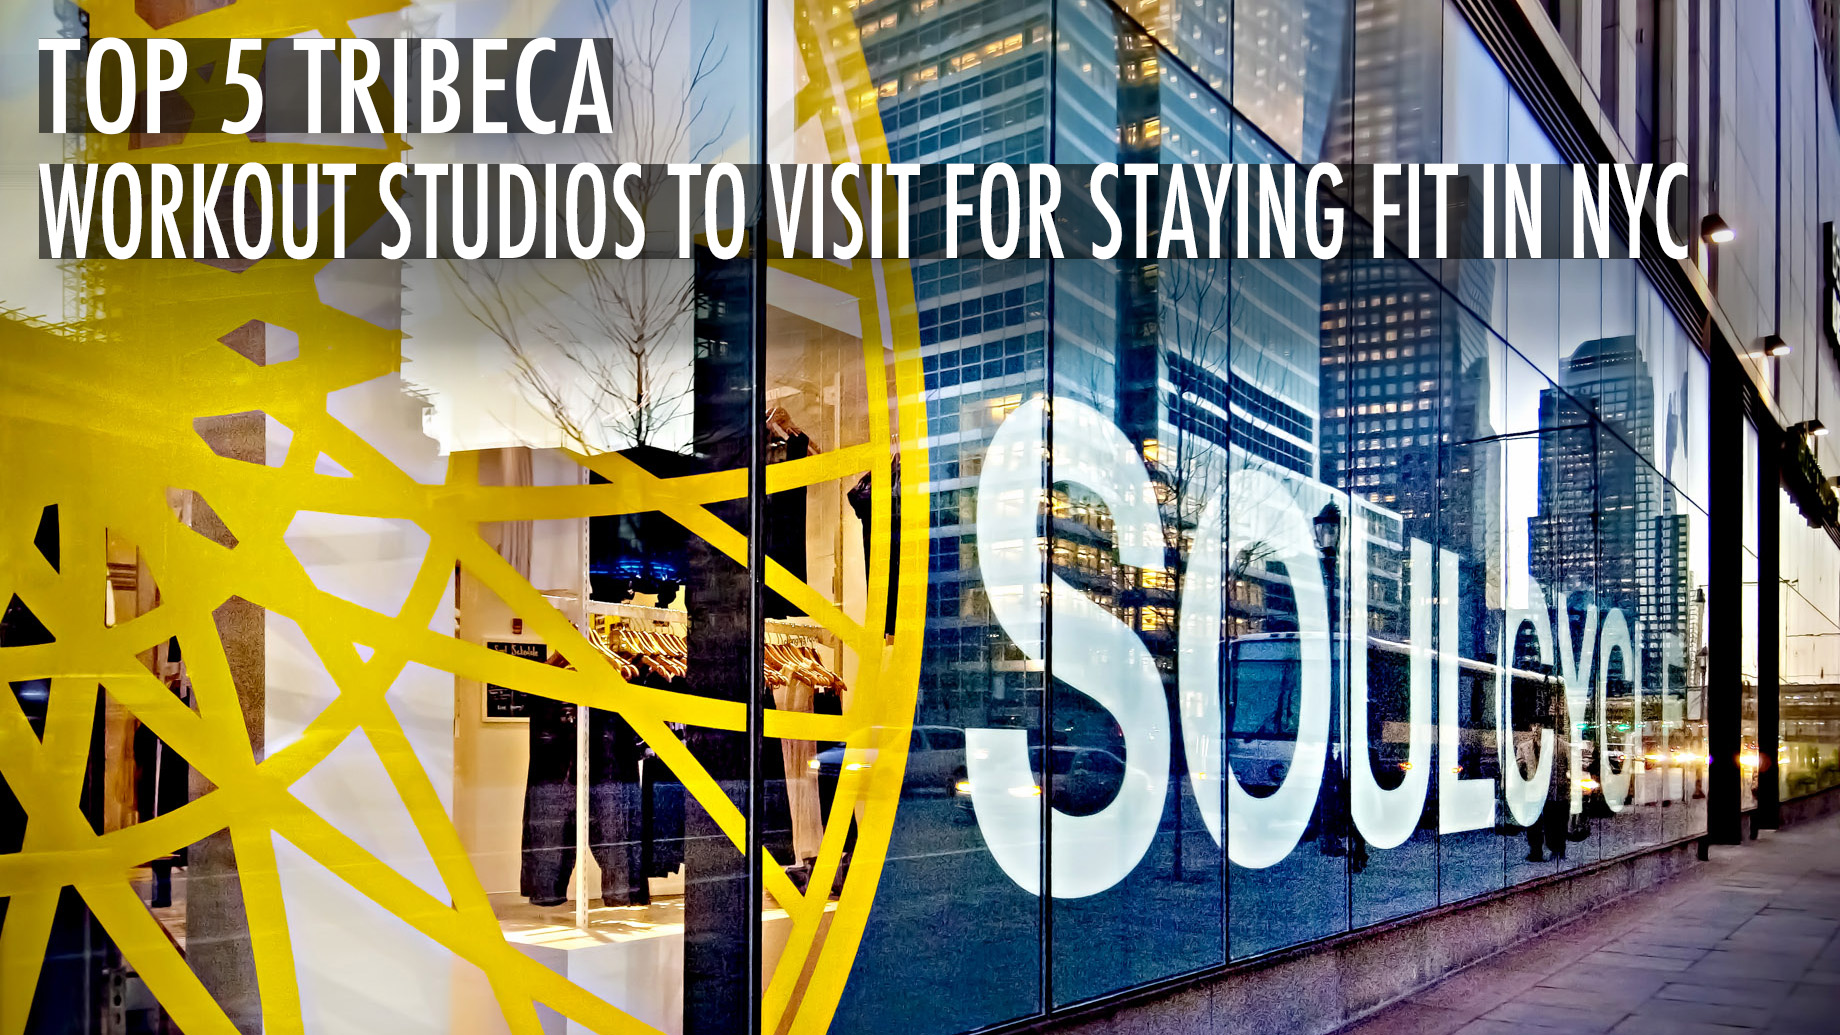 Top 5 TriBeCa Workout Studios to Visit for Staying Fit in NYC